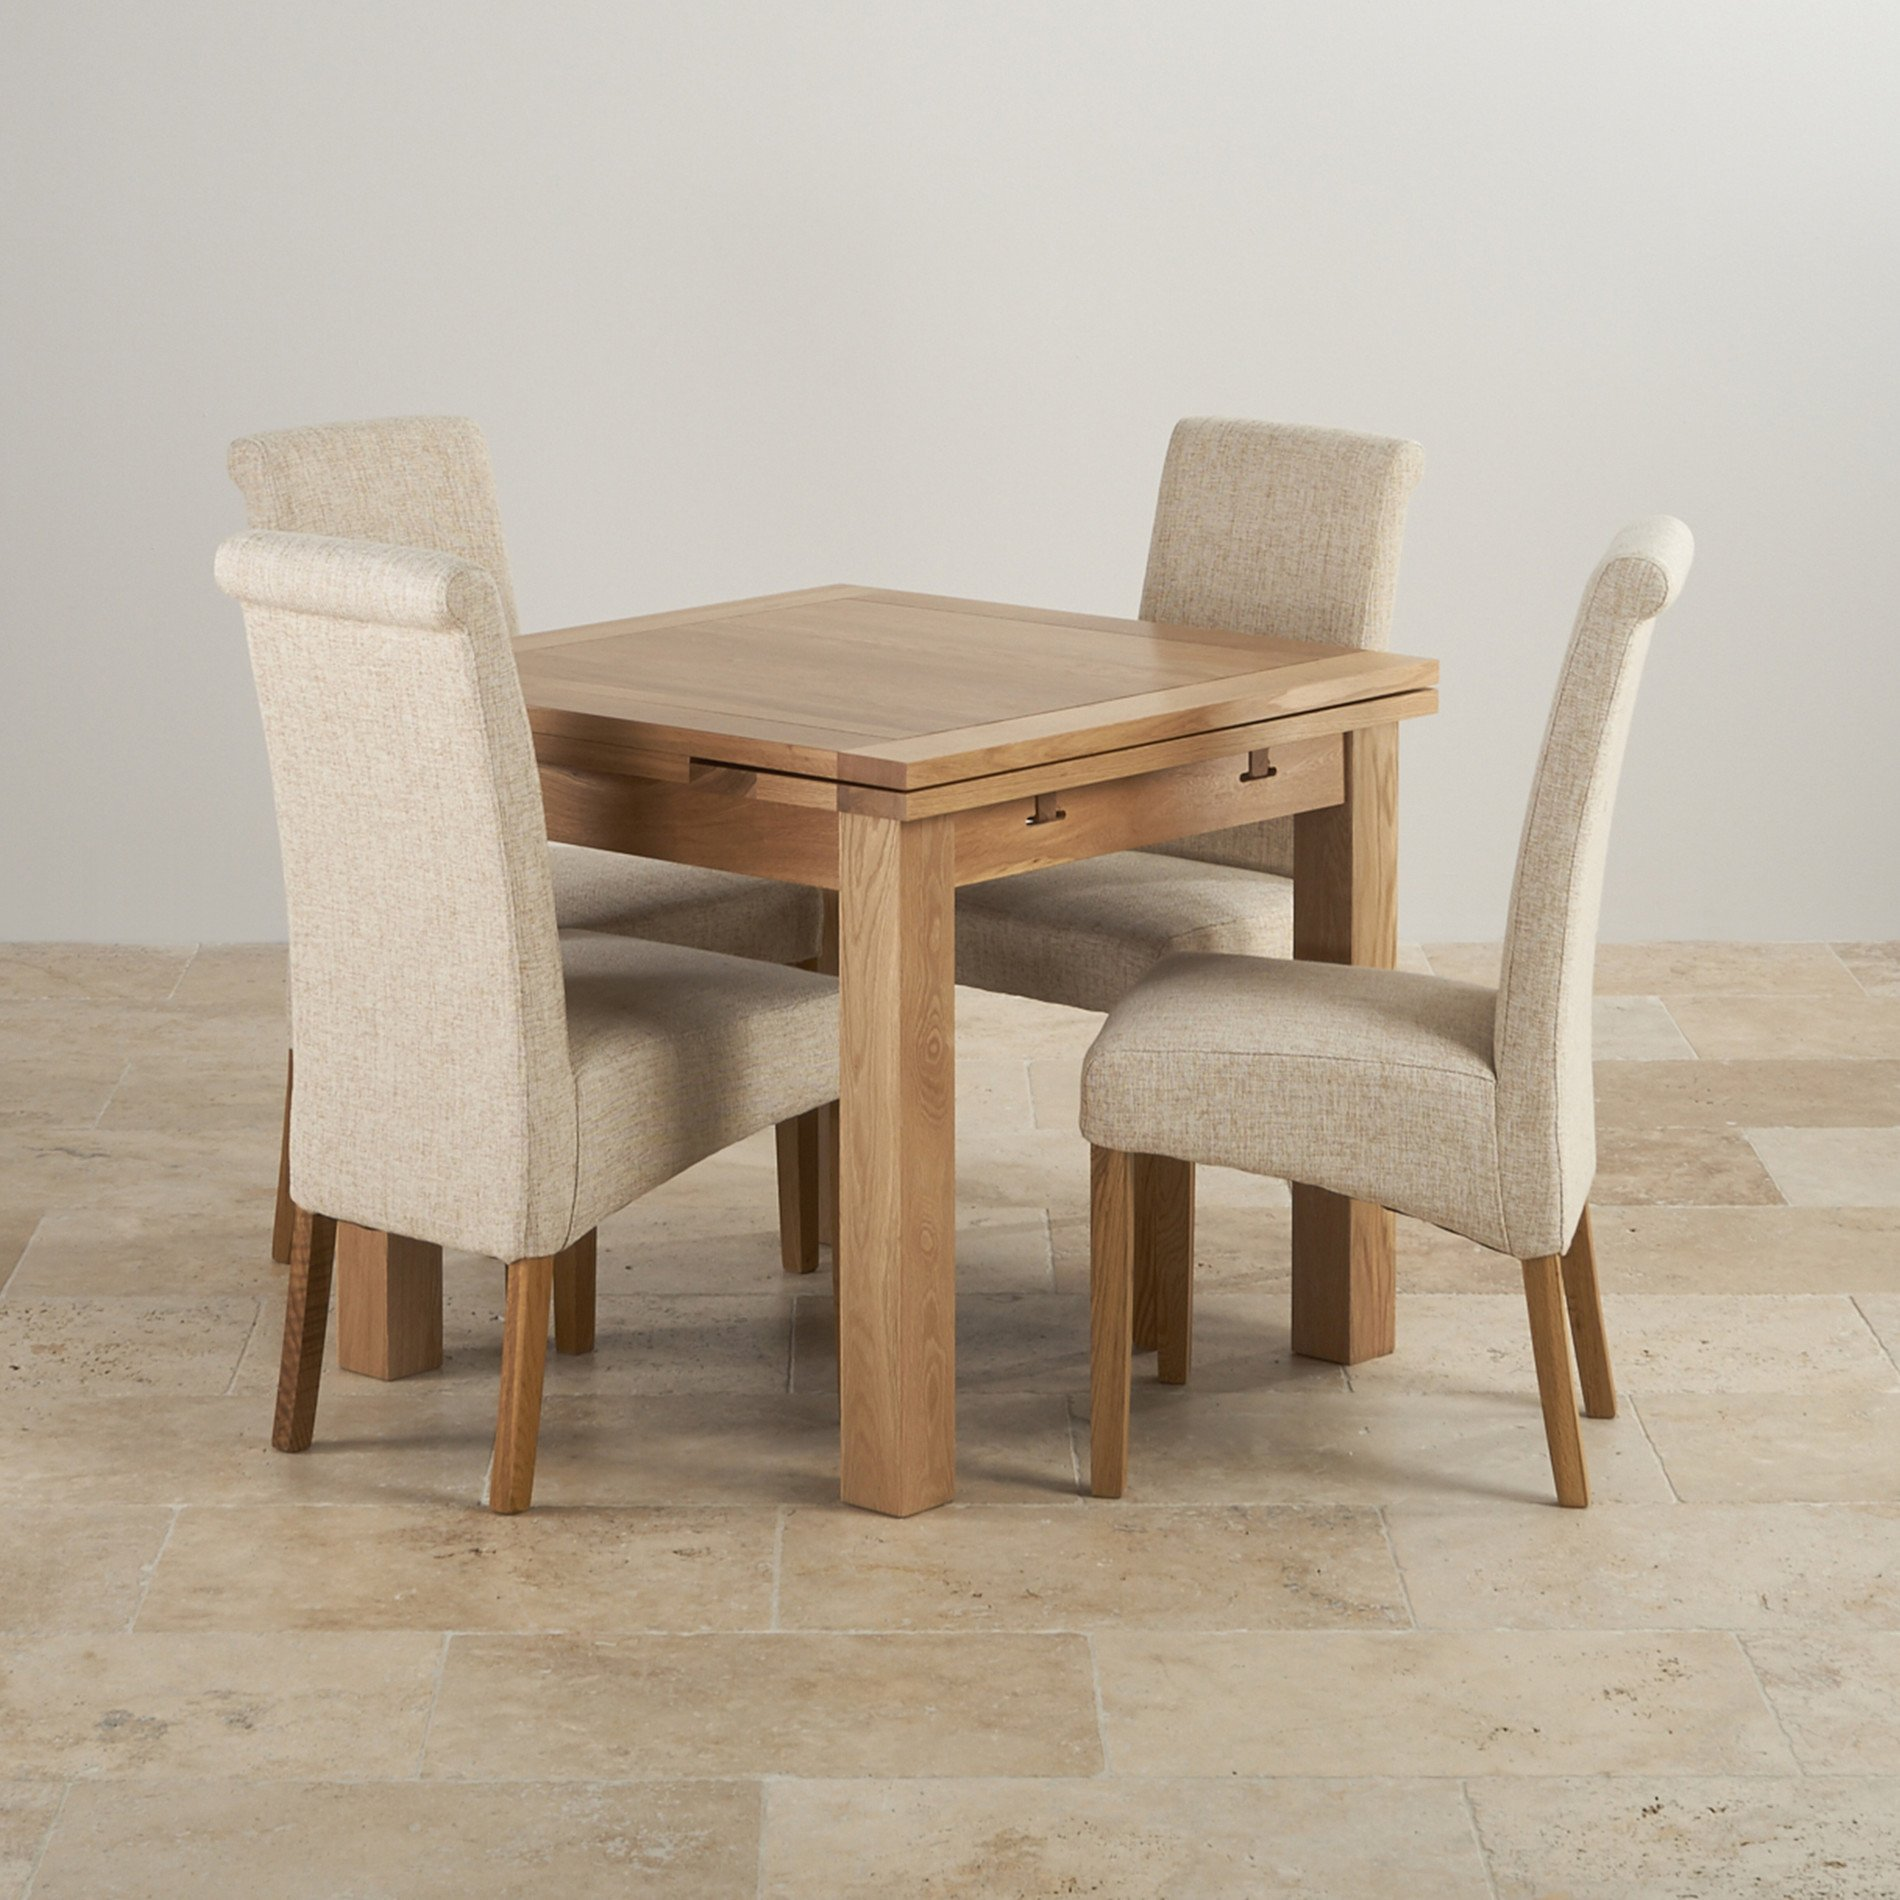 dorset oak 3ft dining table with 4 beige fabric chairs. Black Bedroom Furniture Sets. Home Design Ideas